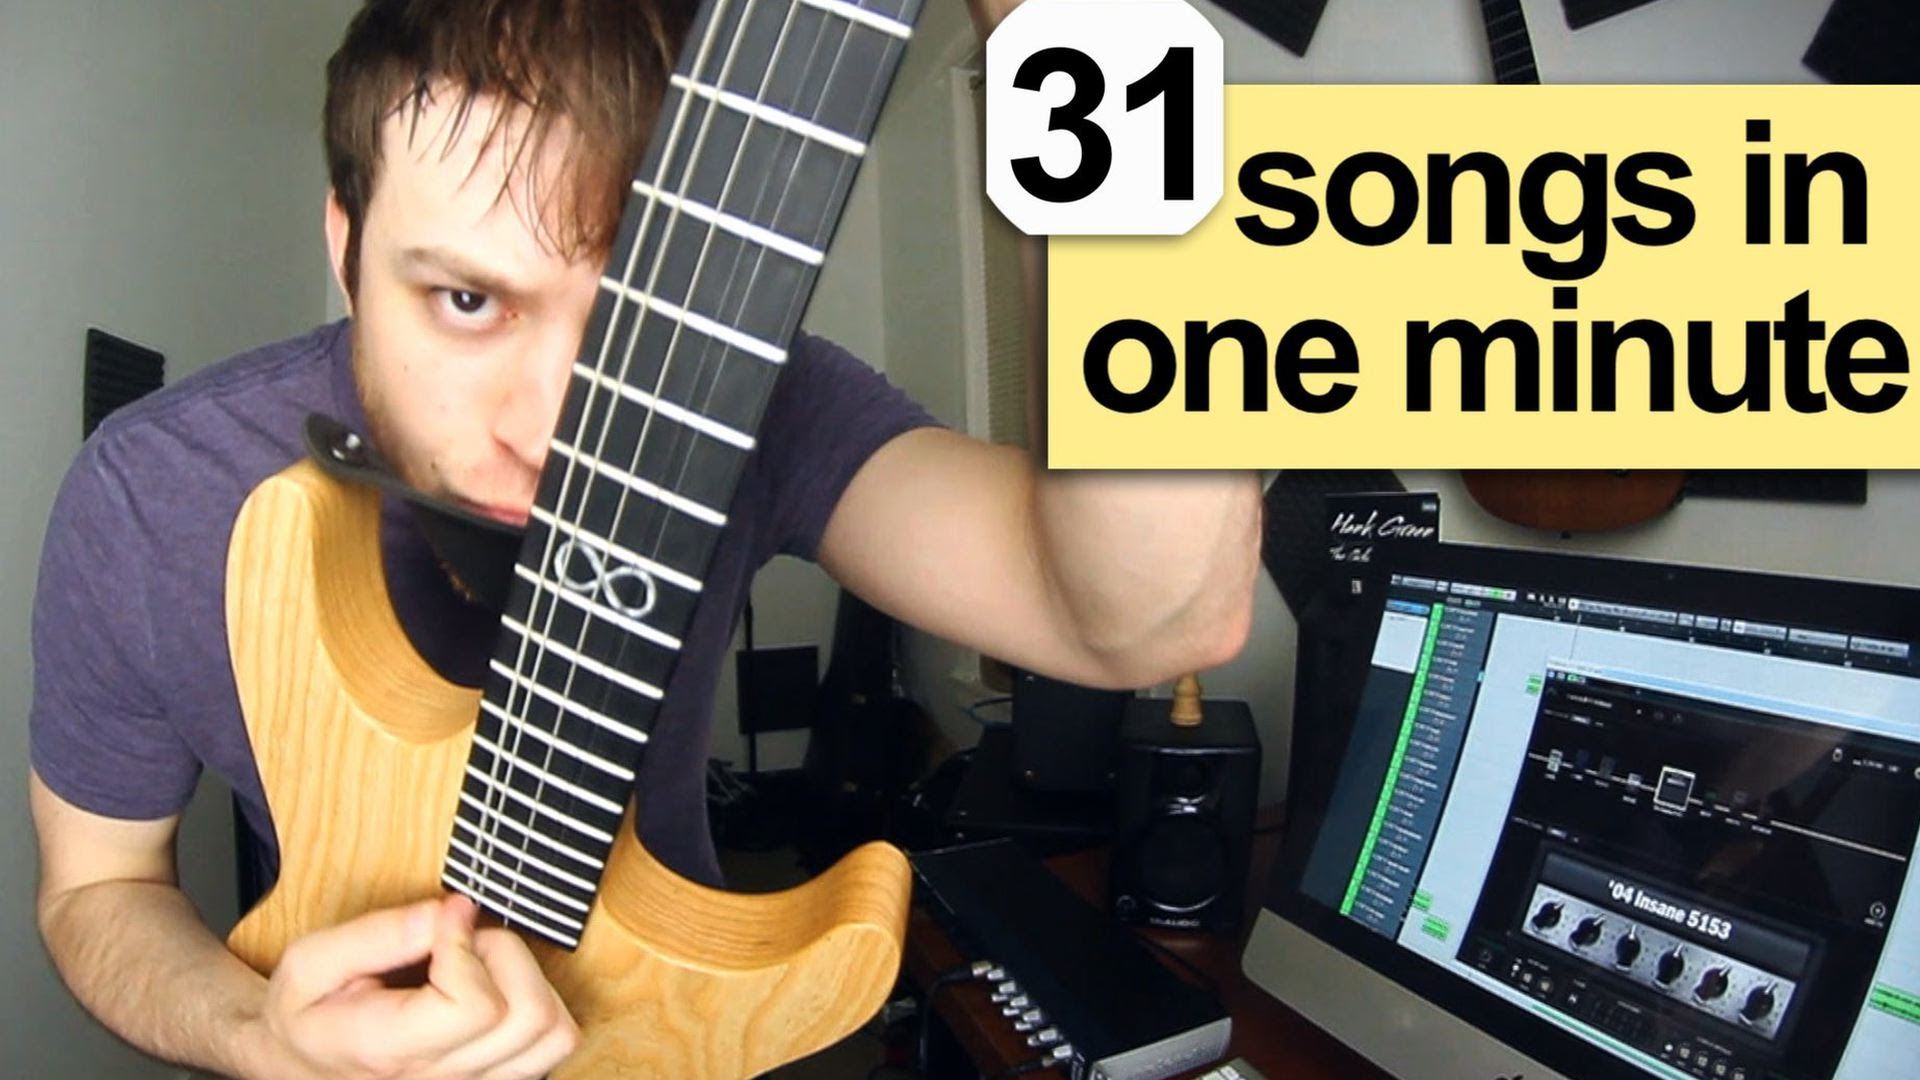 Guitarist Quickly Performs Riffs From Thirty-One Different Songs in